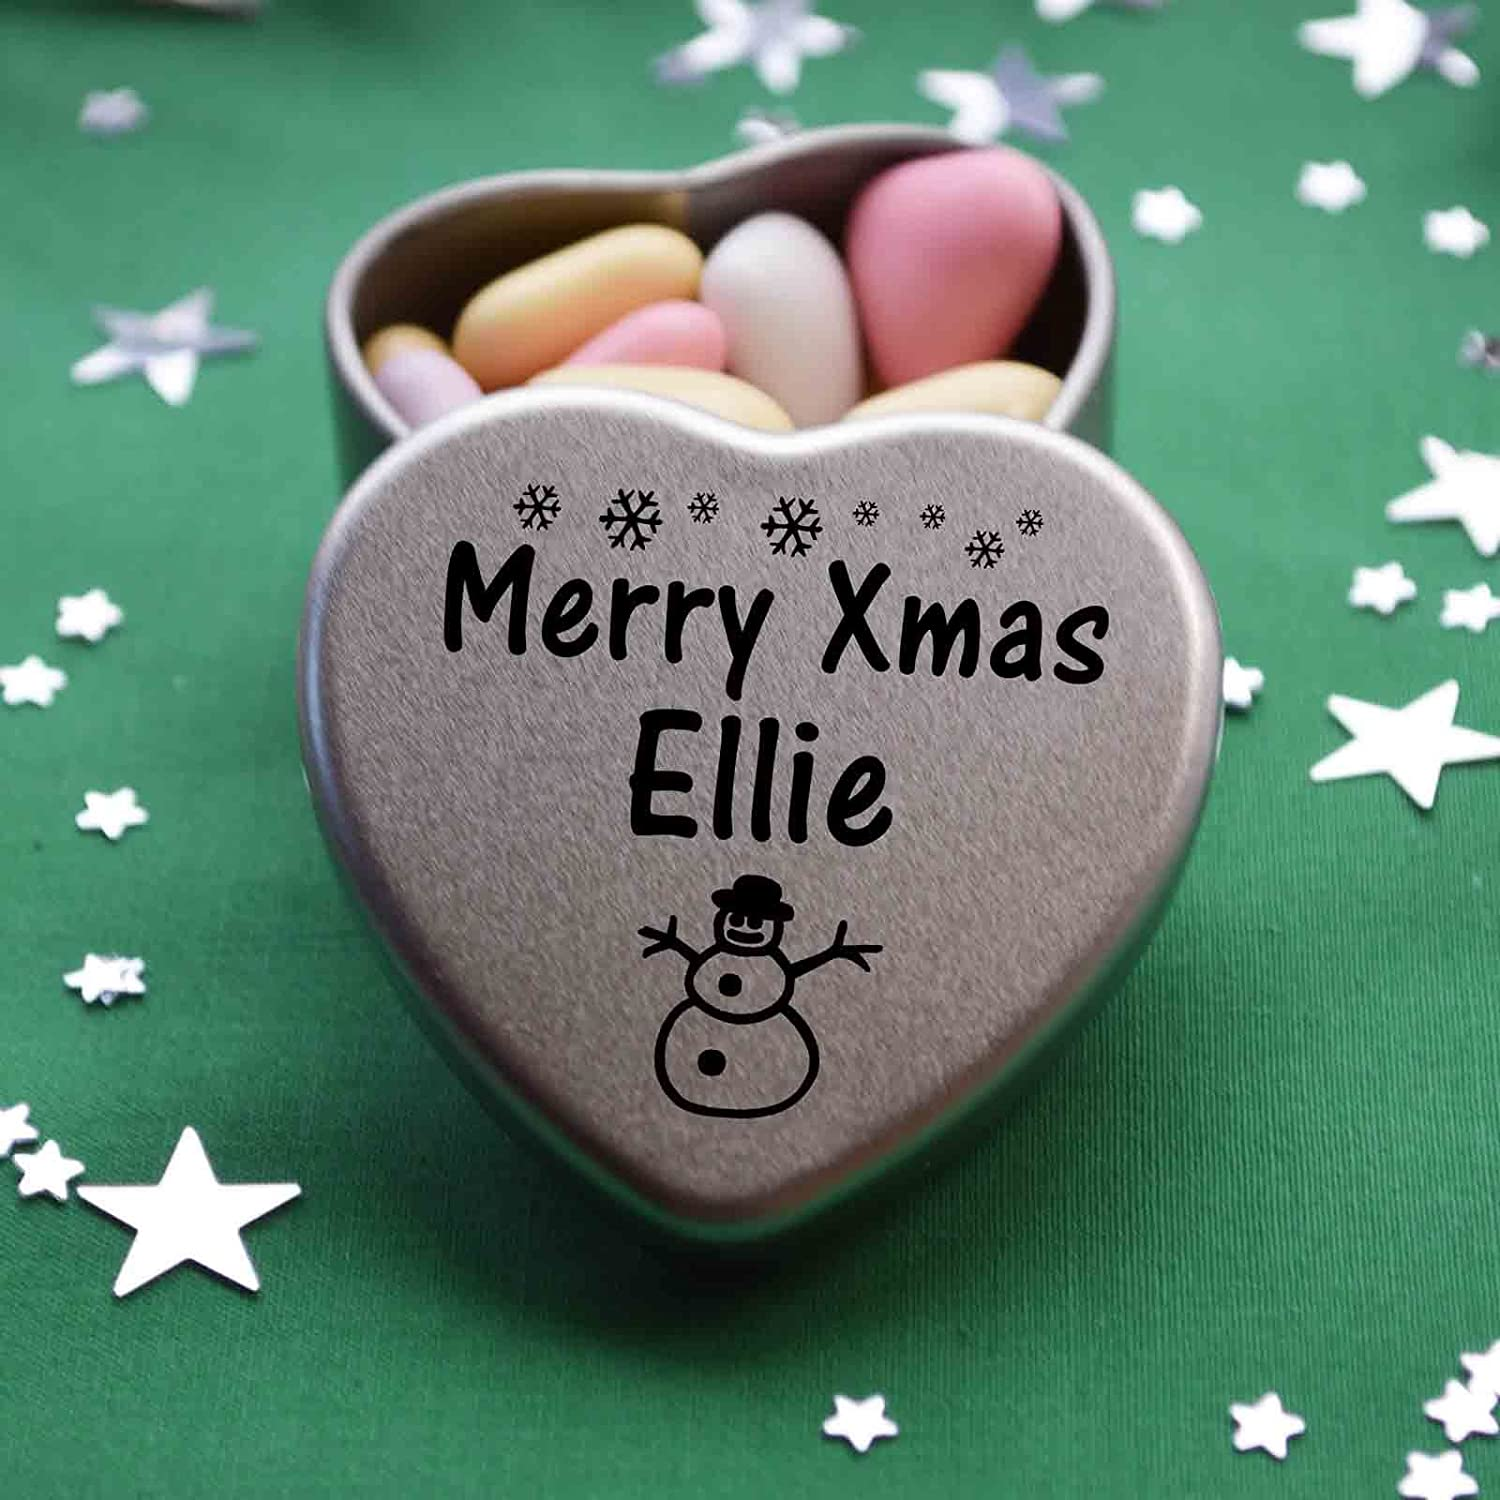 Merry Xmas Ellie Mini Heart Gift Tin with Chocolates Fits Beautifully in the palm of your hand. Great Christmas Present for Ellie Makes the perfect Stocking Filler or Card alternative. Tin Dimensions 45mmx45mmx20mm. Three designs Available, Father Christm